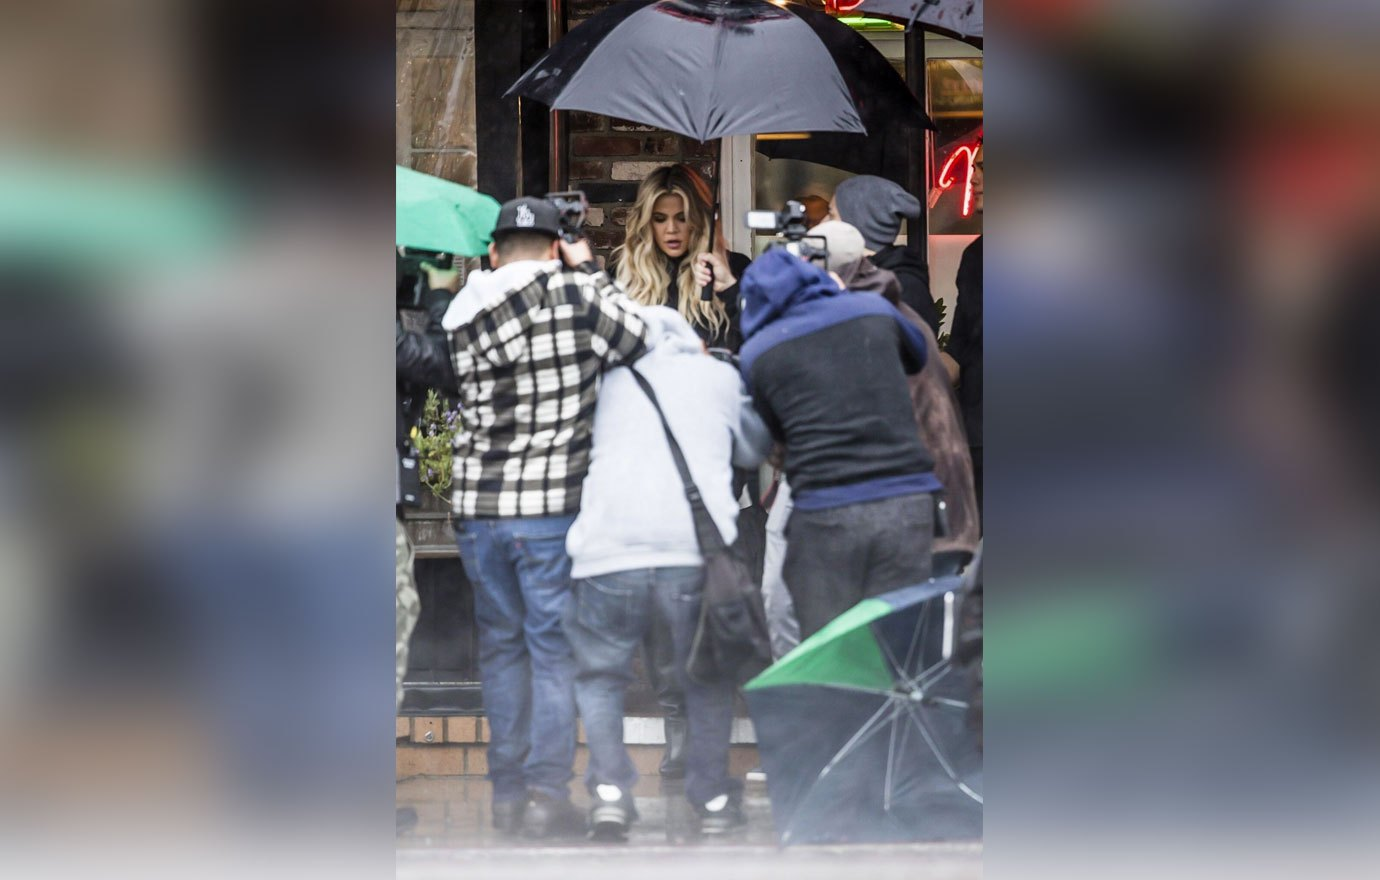 KHLOE Kardashian Gets Swarmed by Paparazzi! MOVE OVER KIM! image